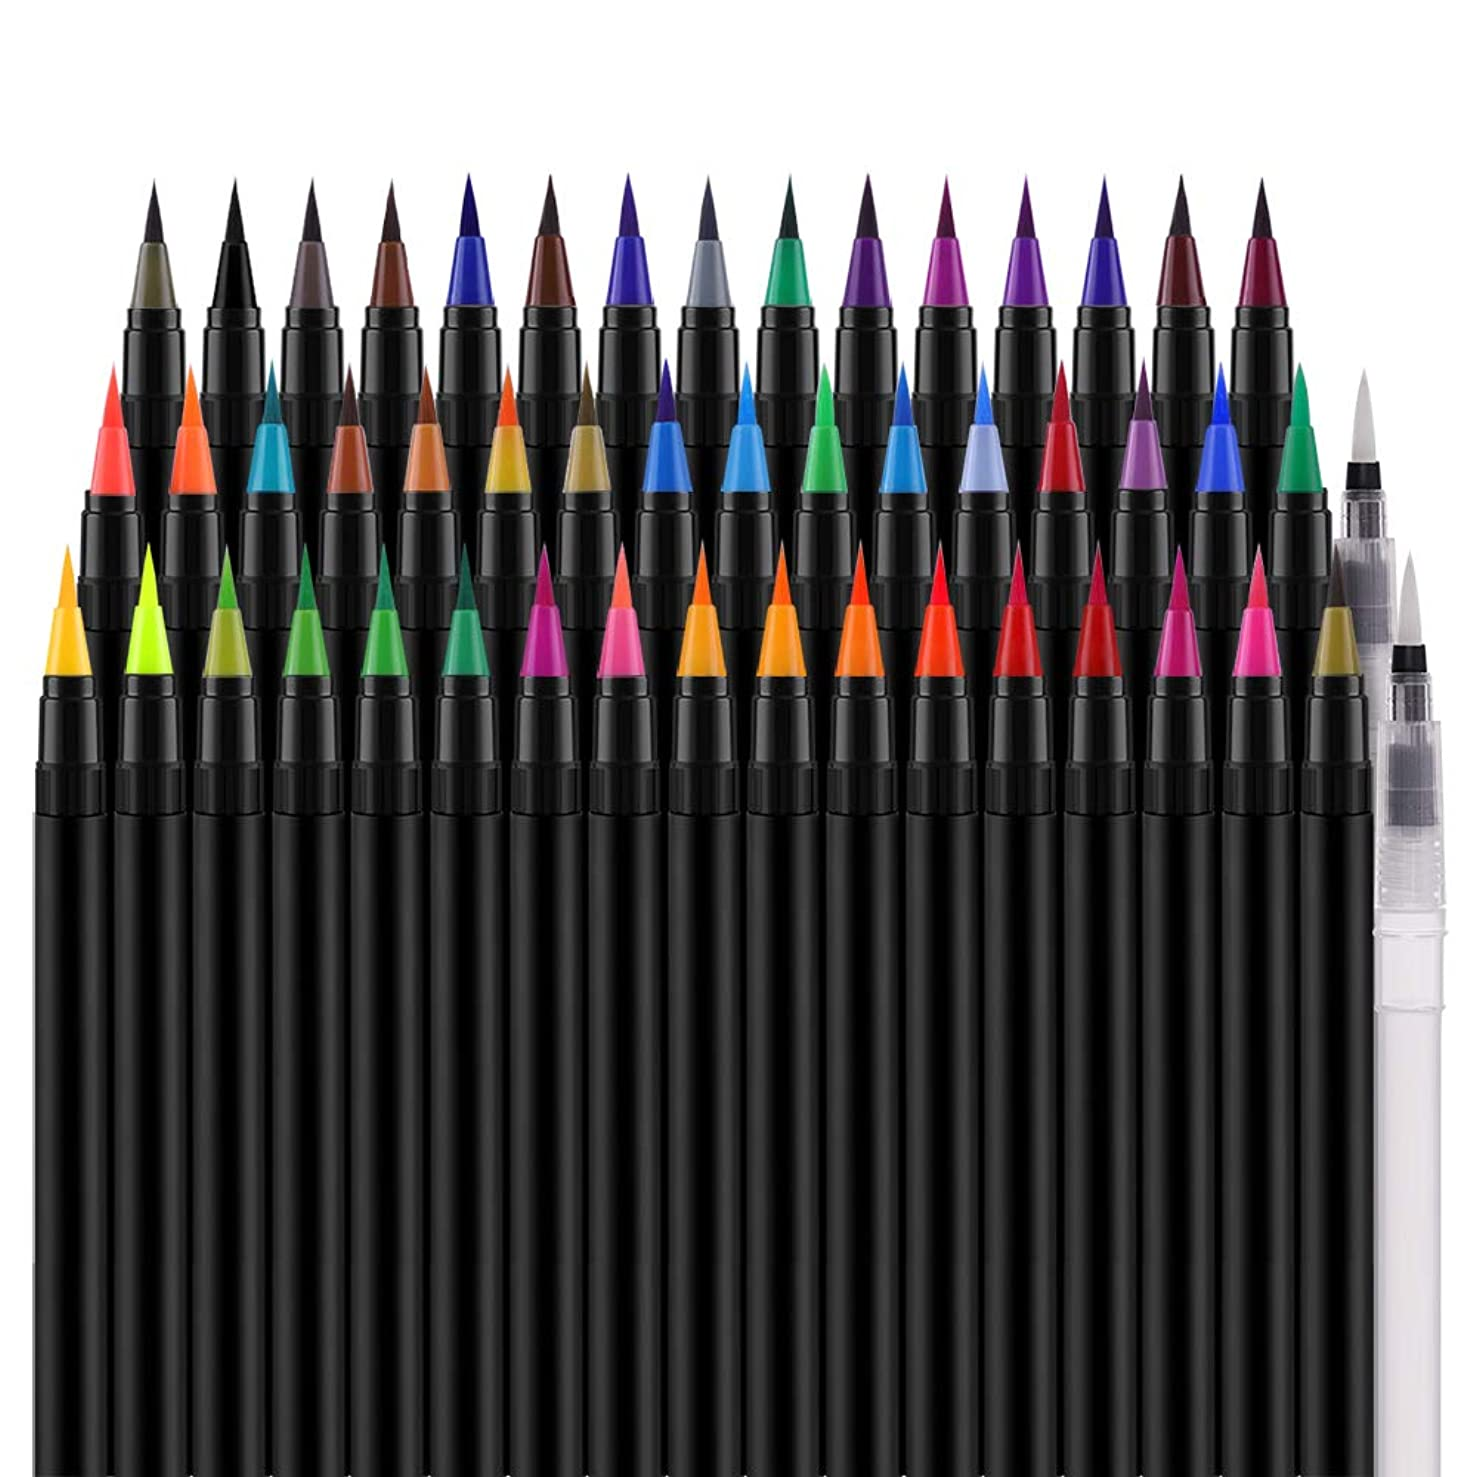 Watercolor Real Brush Markers Pen, ONE PIX 48 Colors for Water Based Drawing, Paint Markers Flexible Nylon Brush Tips for Adult and Kids Coloring, Comic, Calligraphy, Artists and Beginners